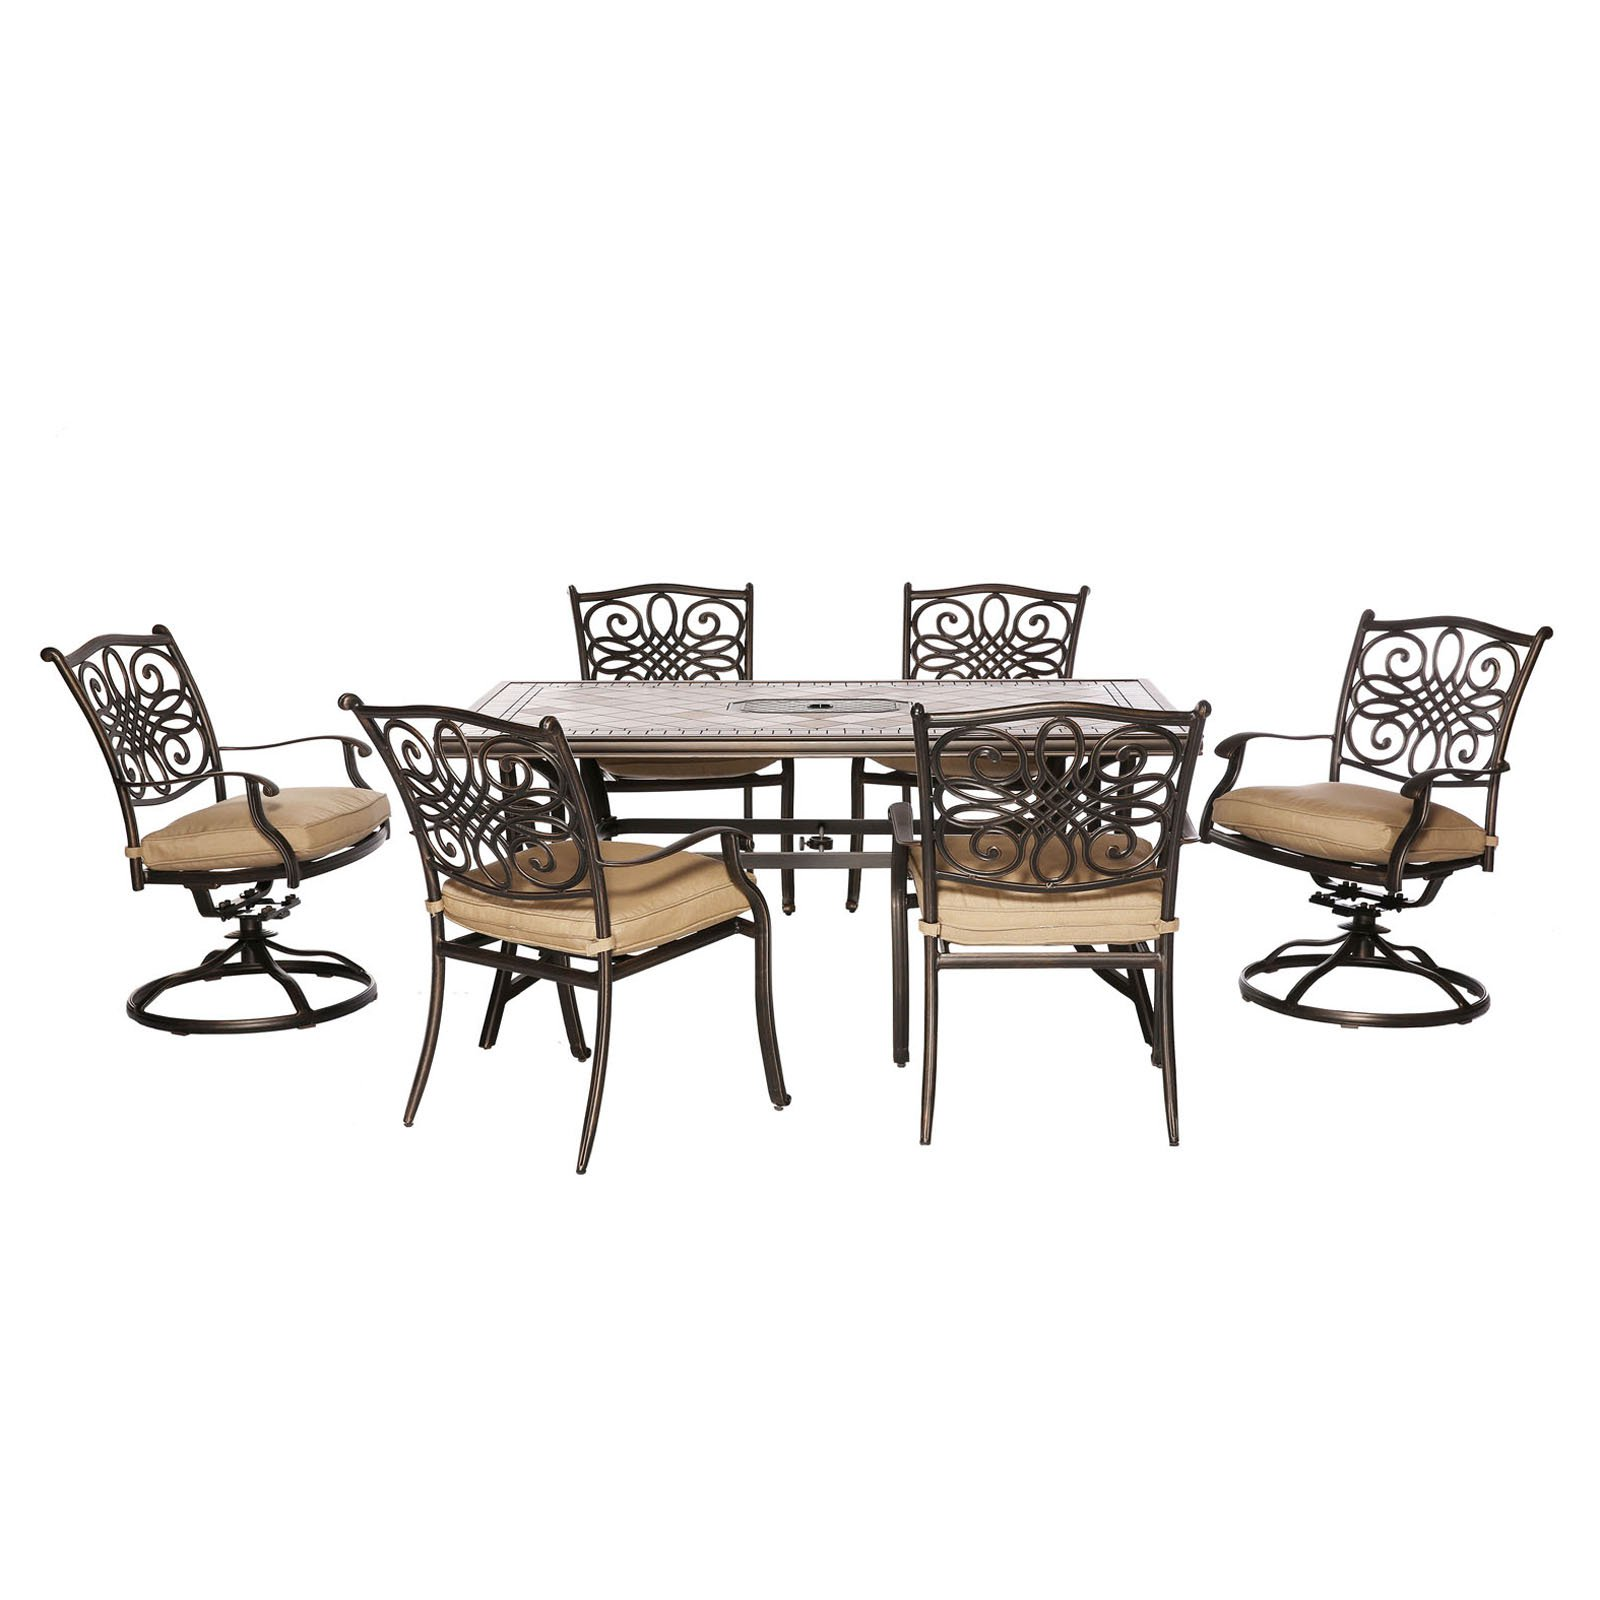 Hanover Monaco Aluminum 7 Piece Rectangular Patio Dining Room Set by Hanover Outdoor